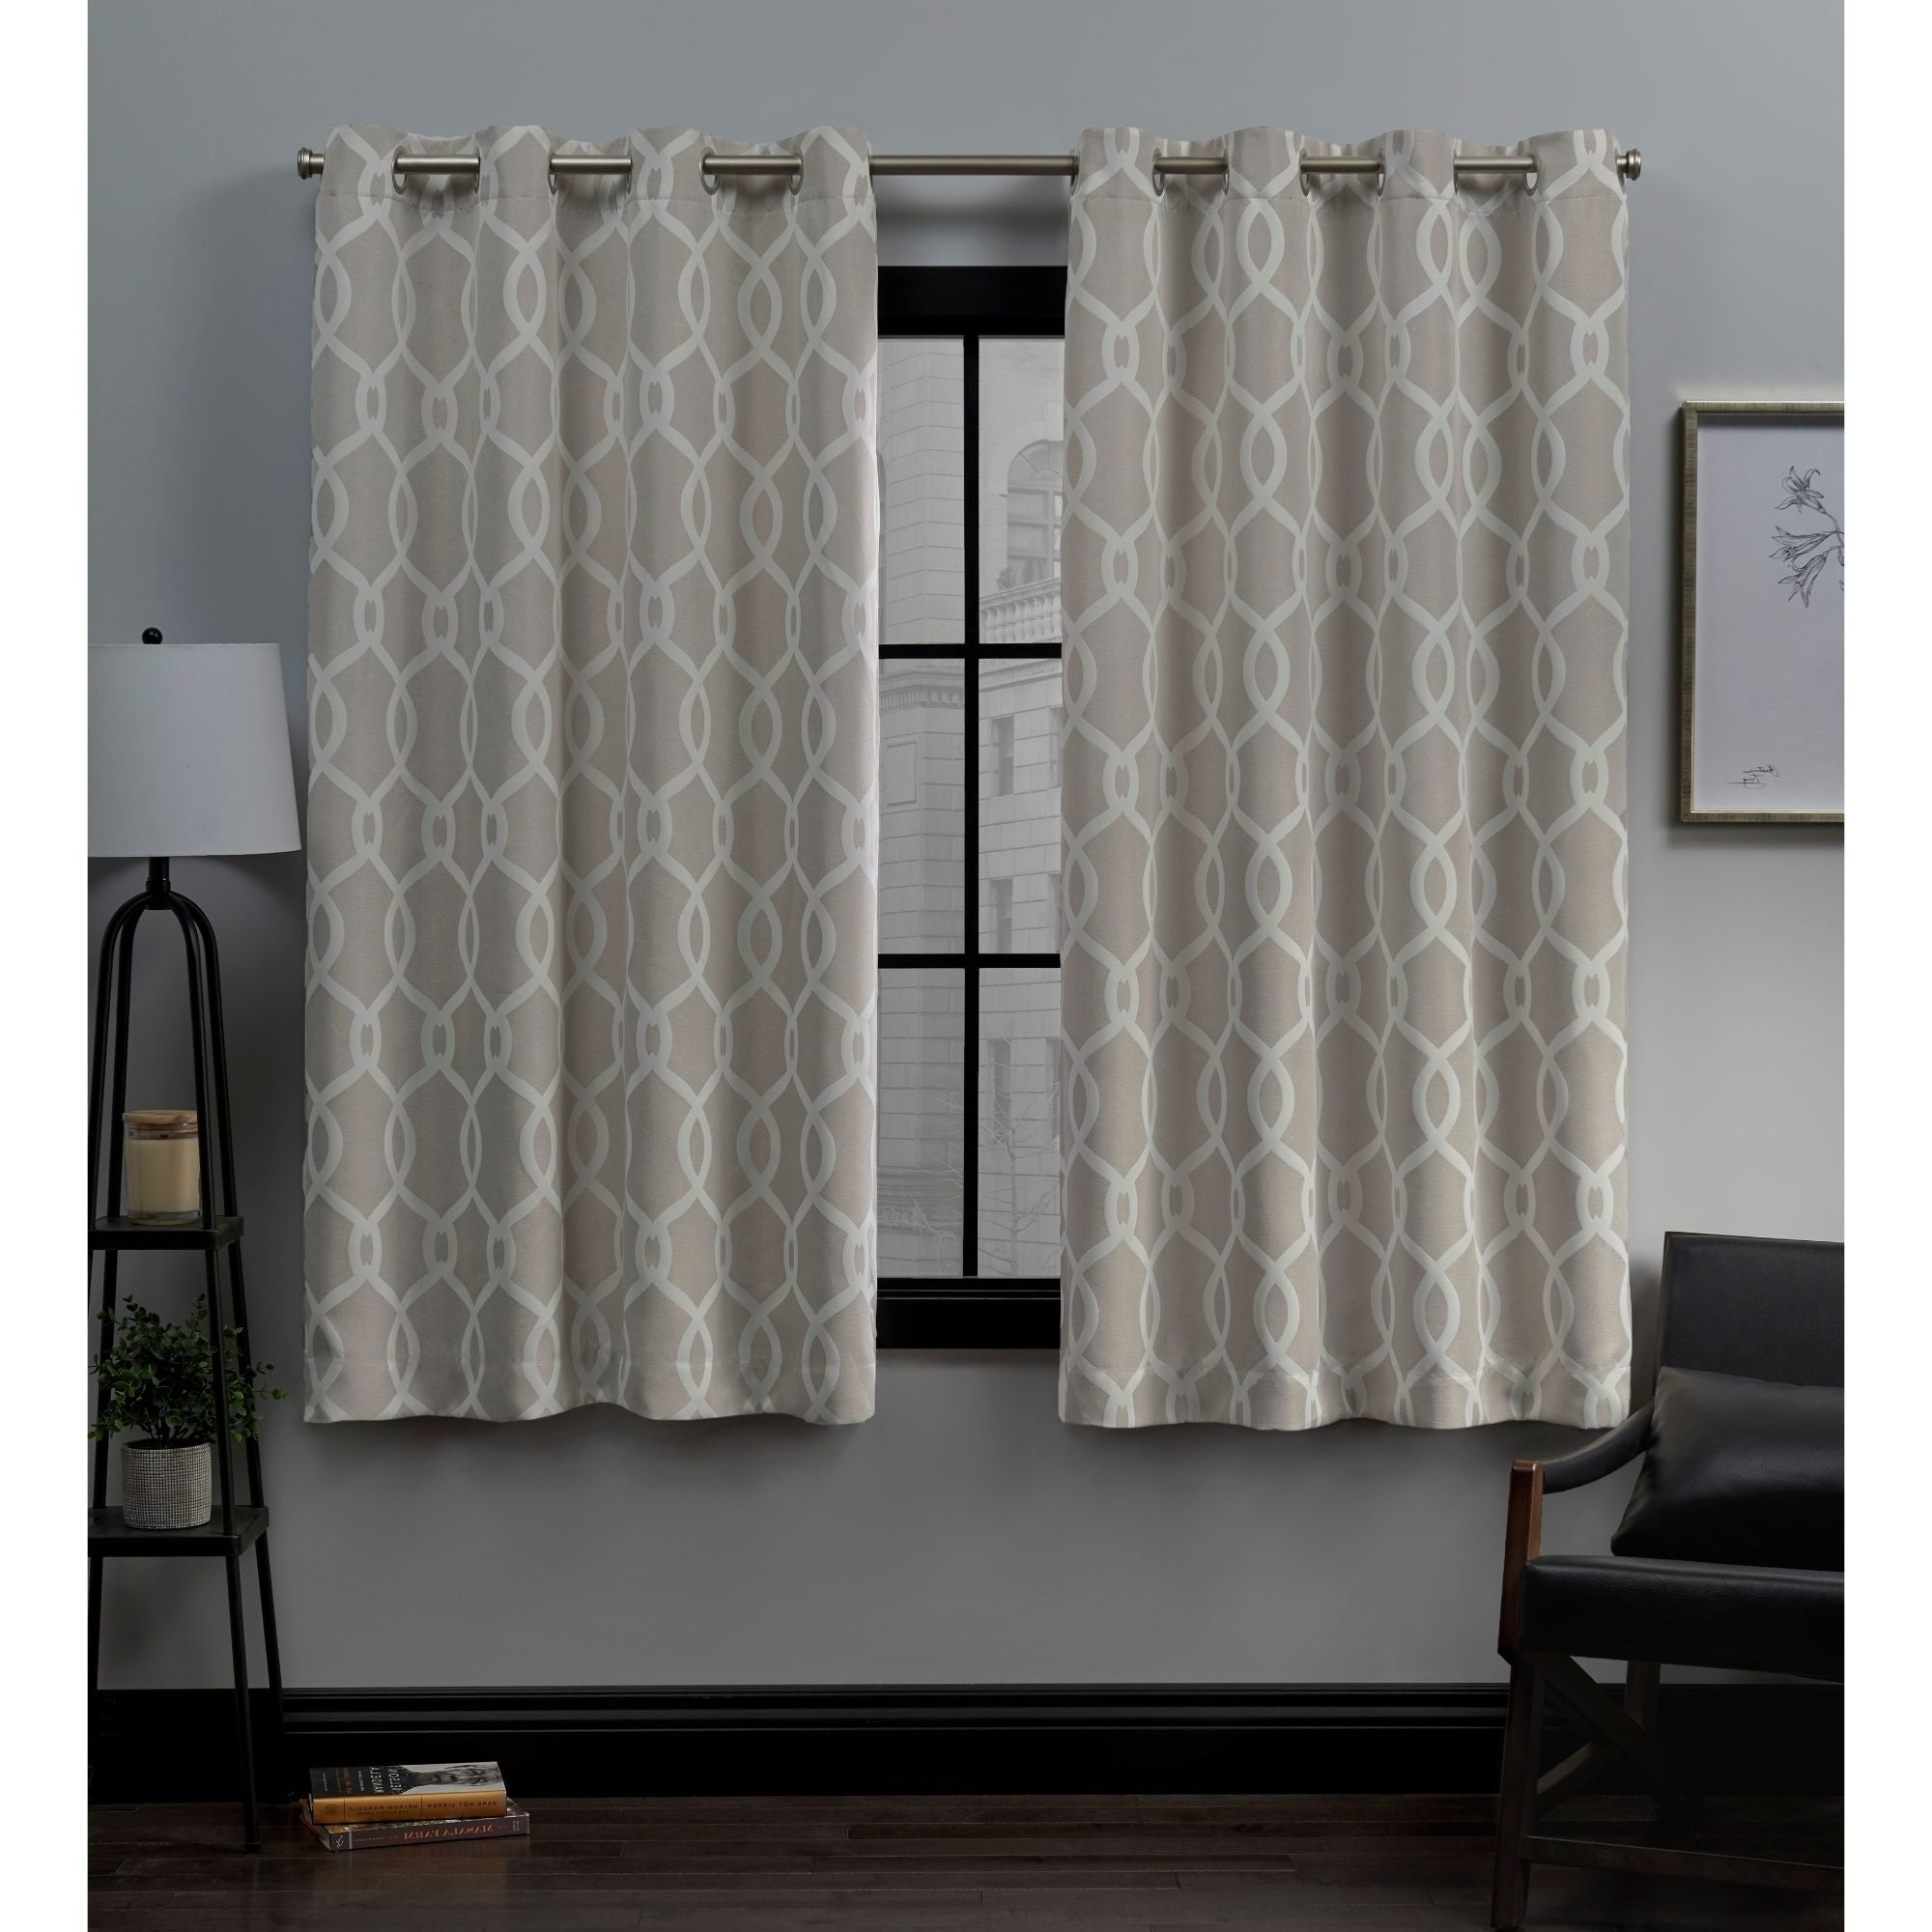 Well Known Forest Hill Woven Blackout Grommet Top Curtain Panel Pairs Pertaining To Ati Home Trilogi Woven Blackout Grommet Top Curtain Panel Pair (View 17 of 20)